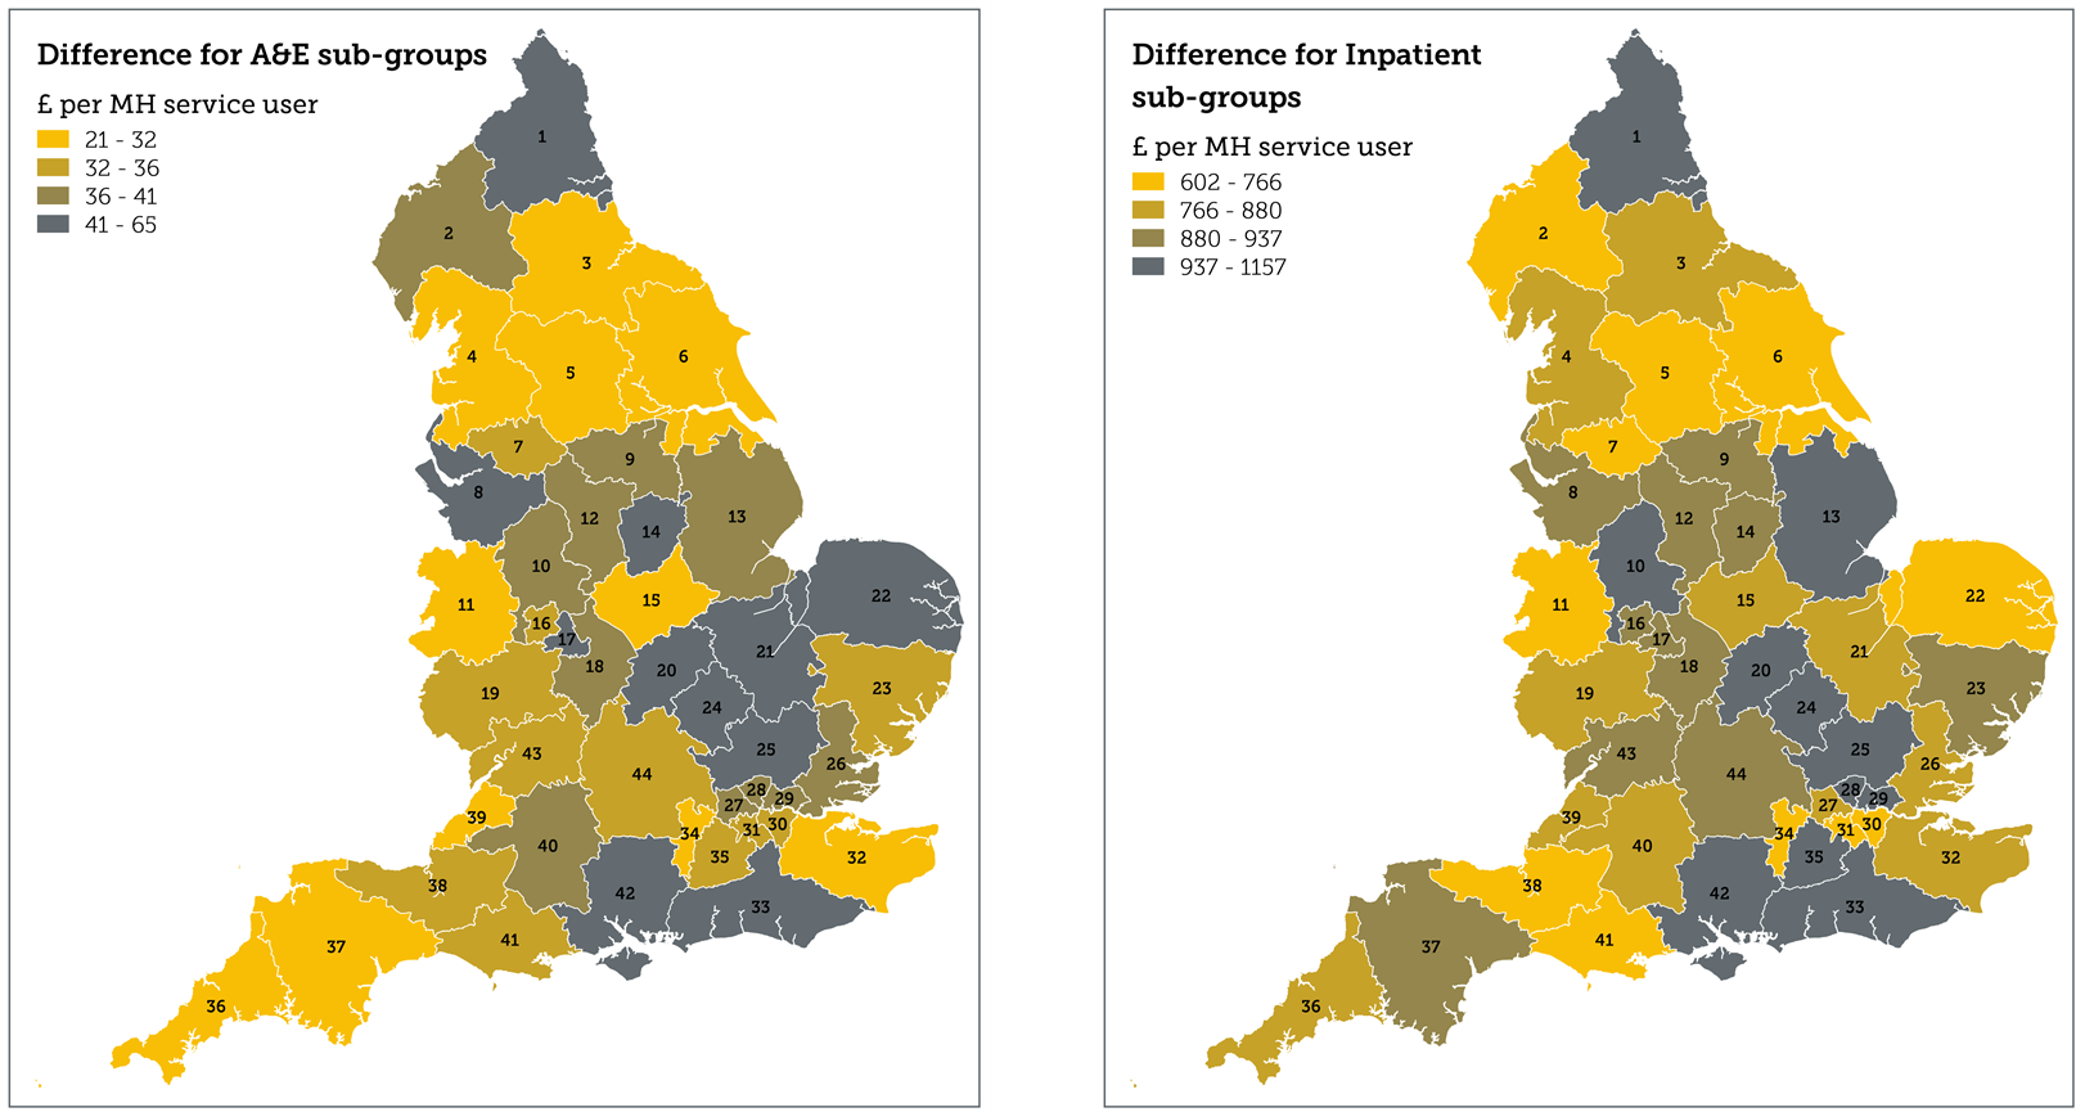 Fig 3. Difference in A&E and inpatient spend per head of service user population by STP area